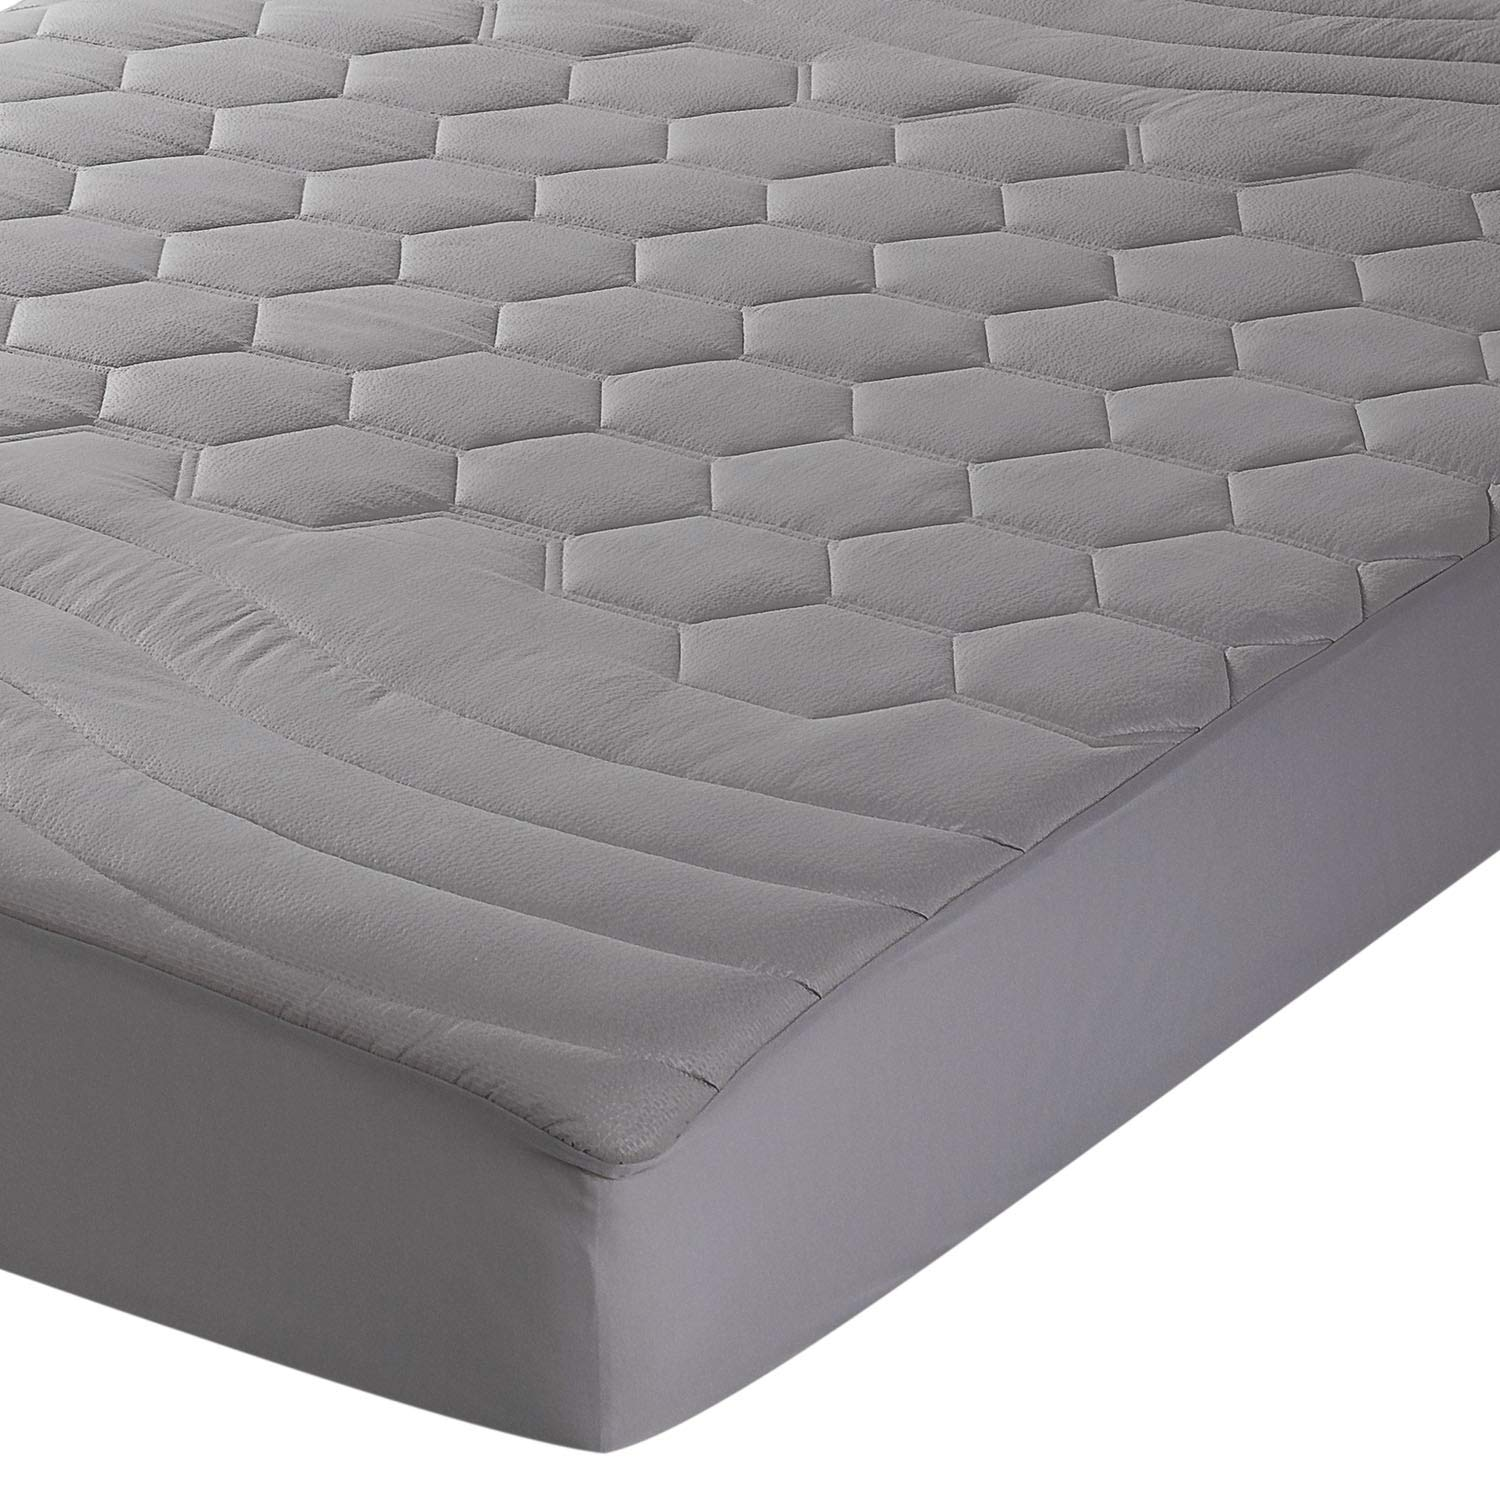 Bedsure Mattress Pad Twin XL/Twin Extra Long Size Hypoallergenic - Antibacterial, Breathable - Ultra Soft Quilted Mattress Protector, Fitted Sheet Mattress Cover White Bedshe